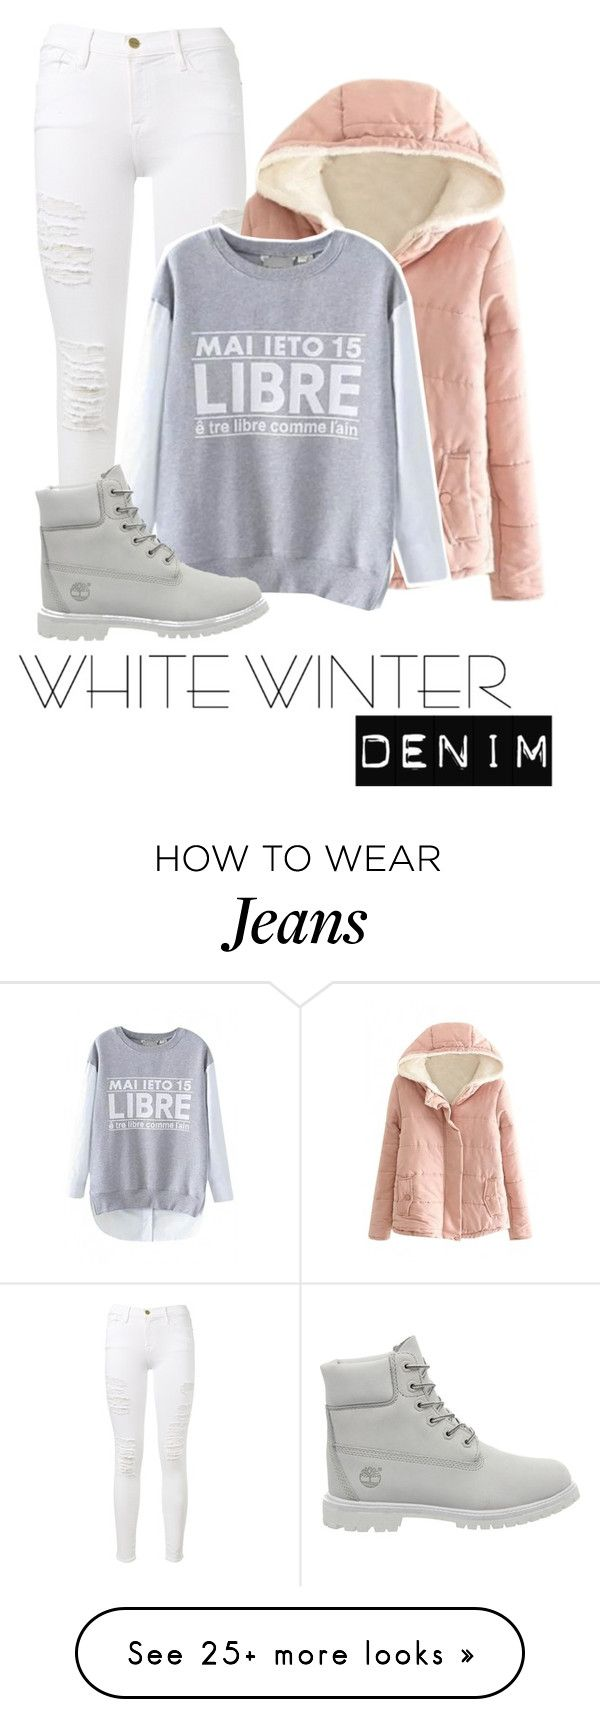 """Untitled #544"" by a01012 on Polyvore featuring Frame Denim, Timberland and bhalo"